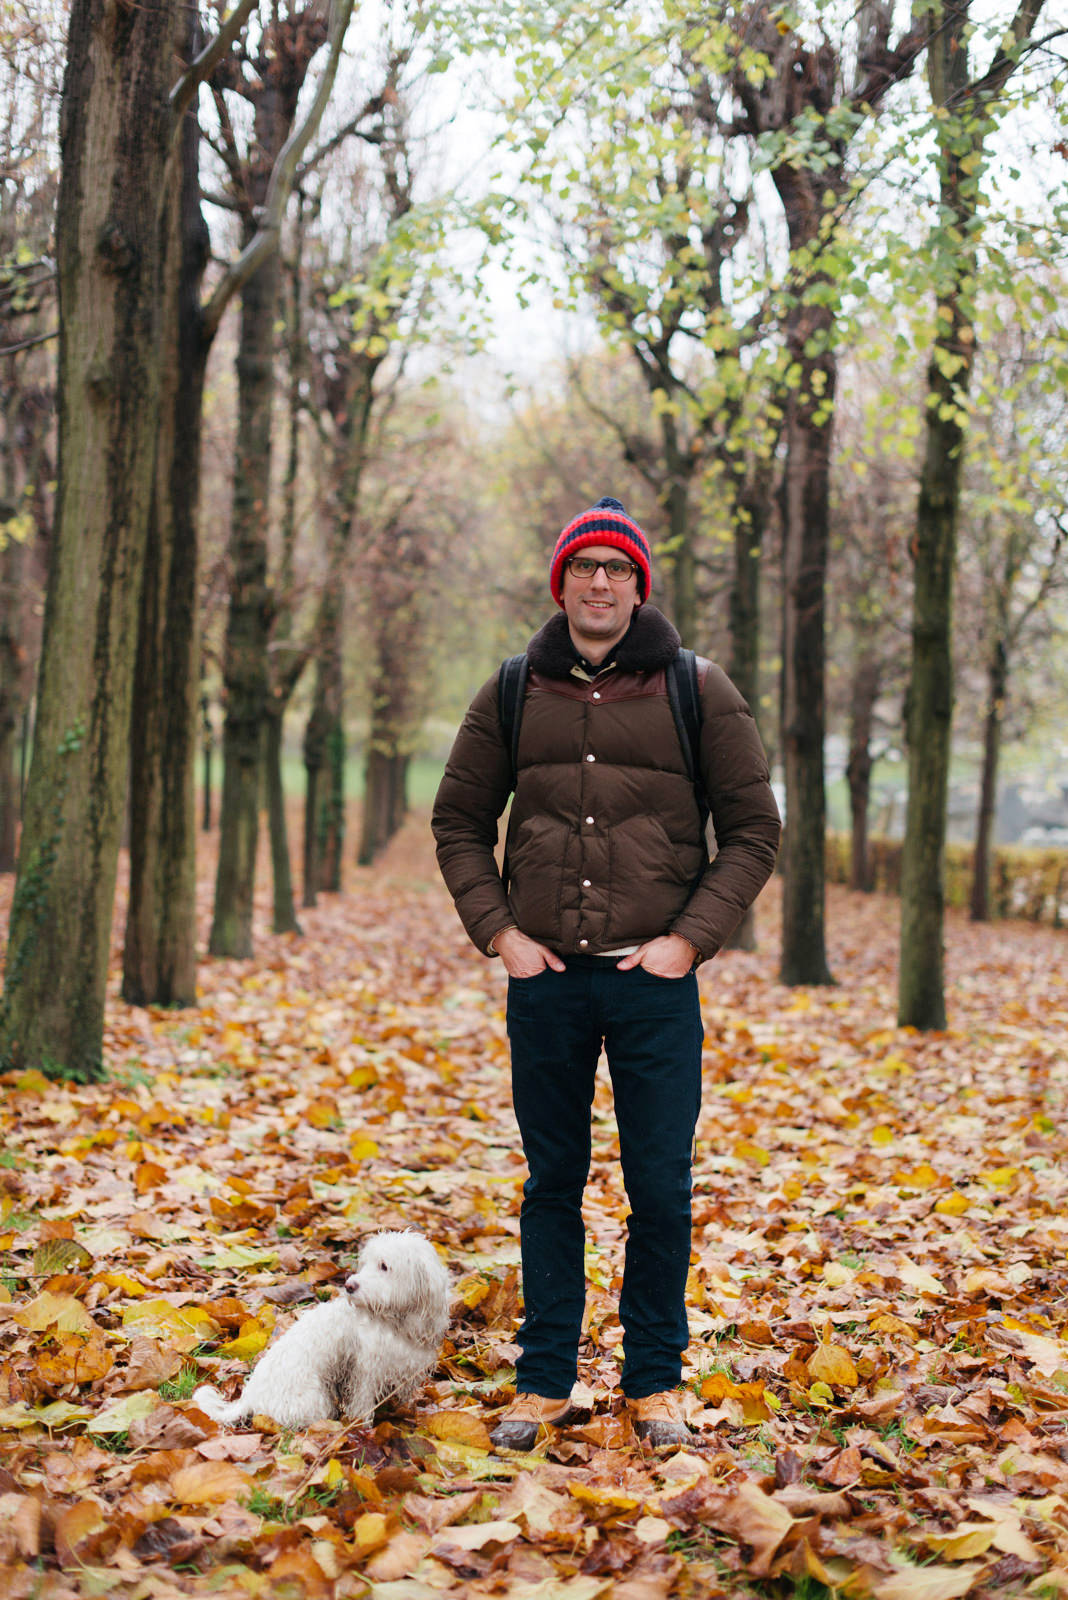 Blog-Mode-And-The-City-Lifestyle-Sortir-Voyager-Son-chien07